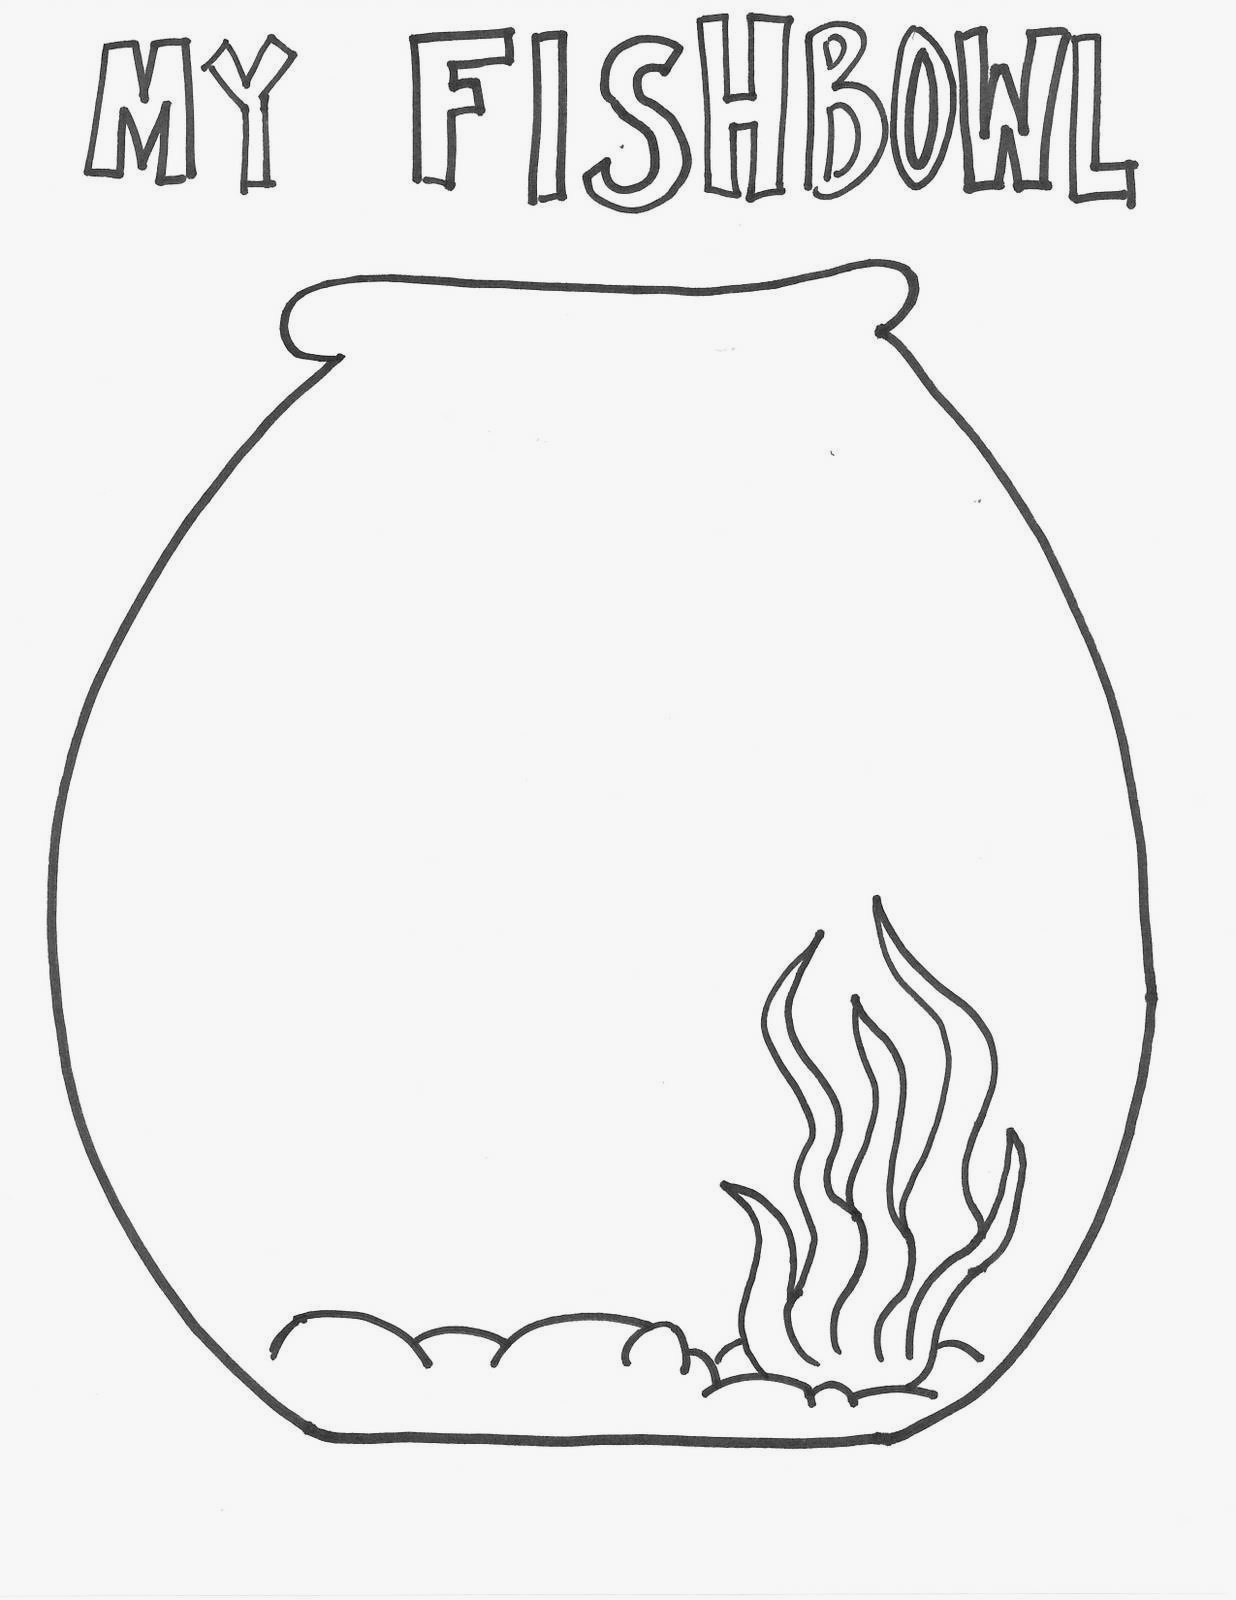 15 Best Cheap Fish Bowl Vases 2021 free download cheap fish bowl vases of school anime coloring page nice anime coloring pages awesome fish within anime coloring pages awesome fish bowl coloring page pin od